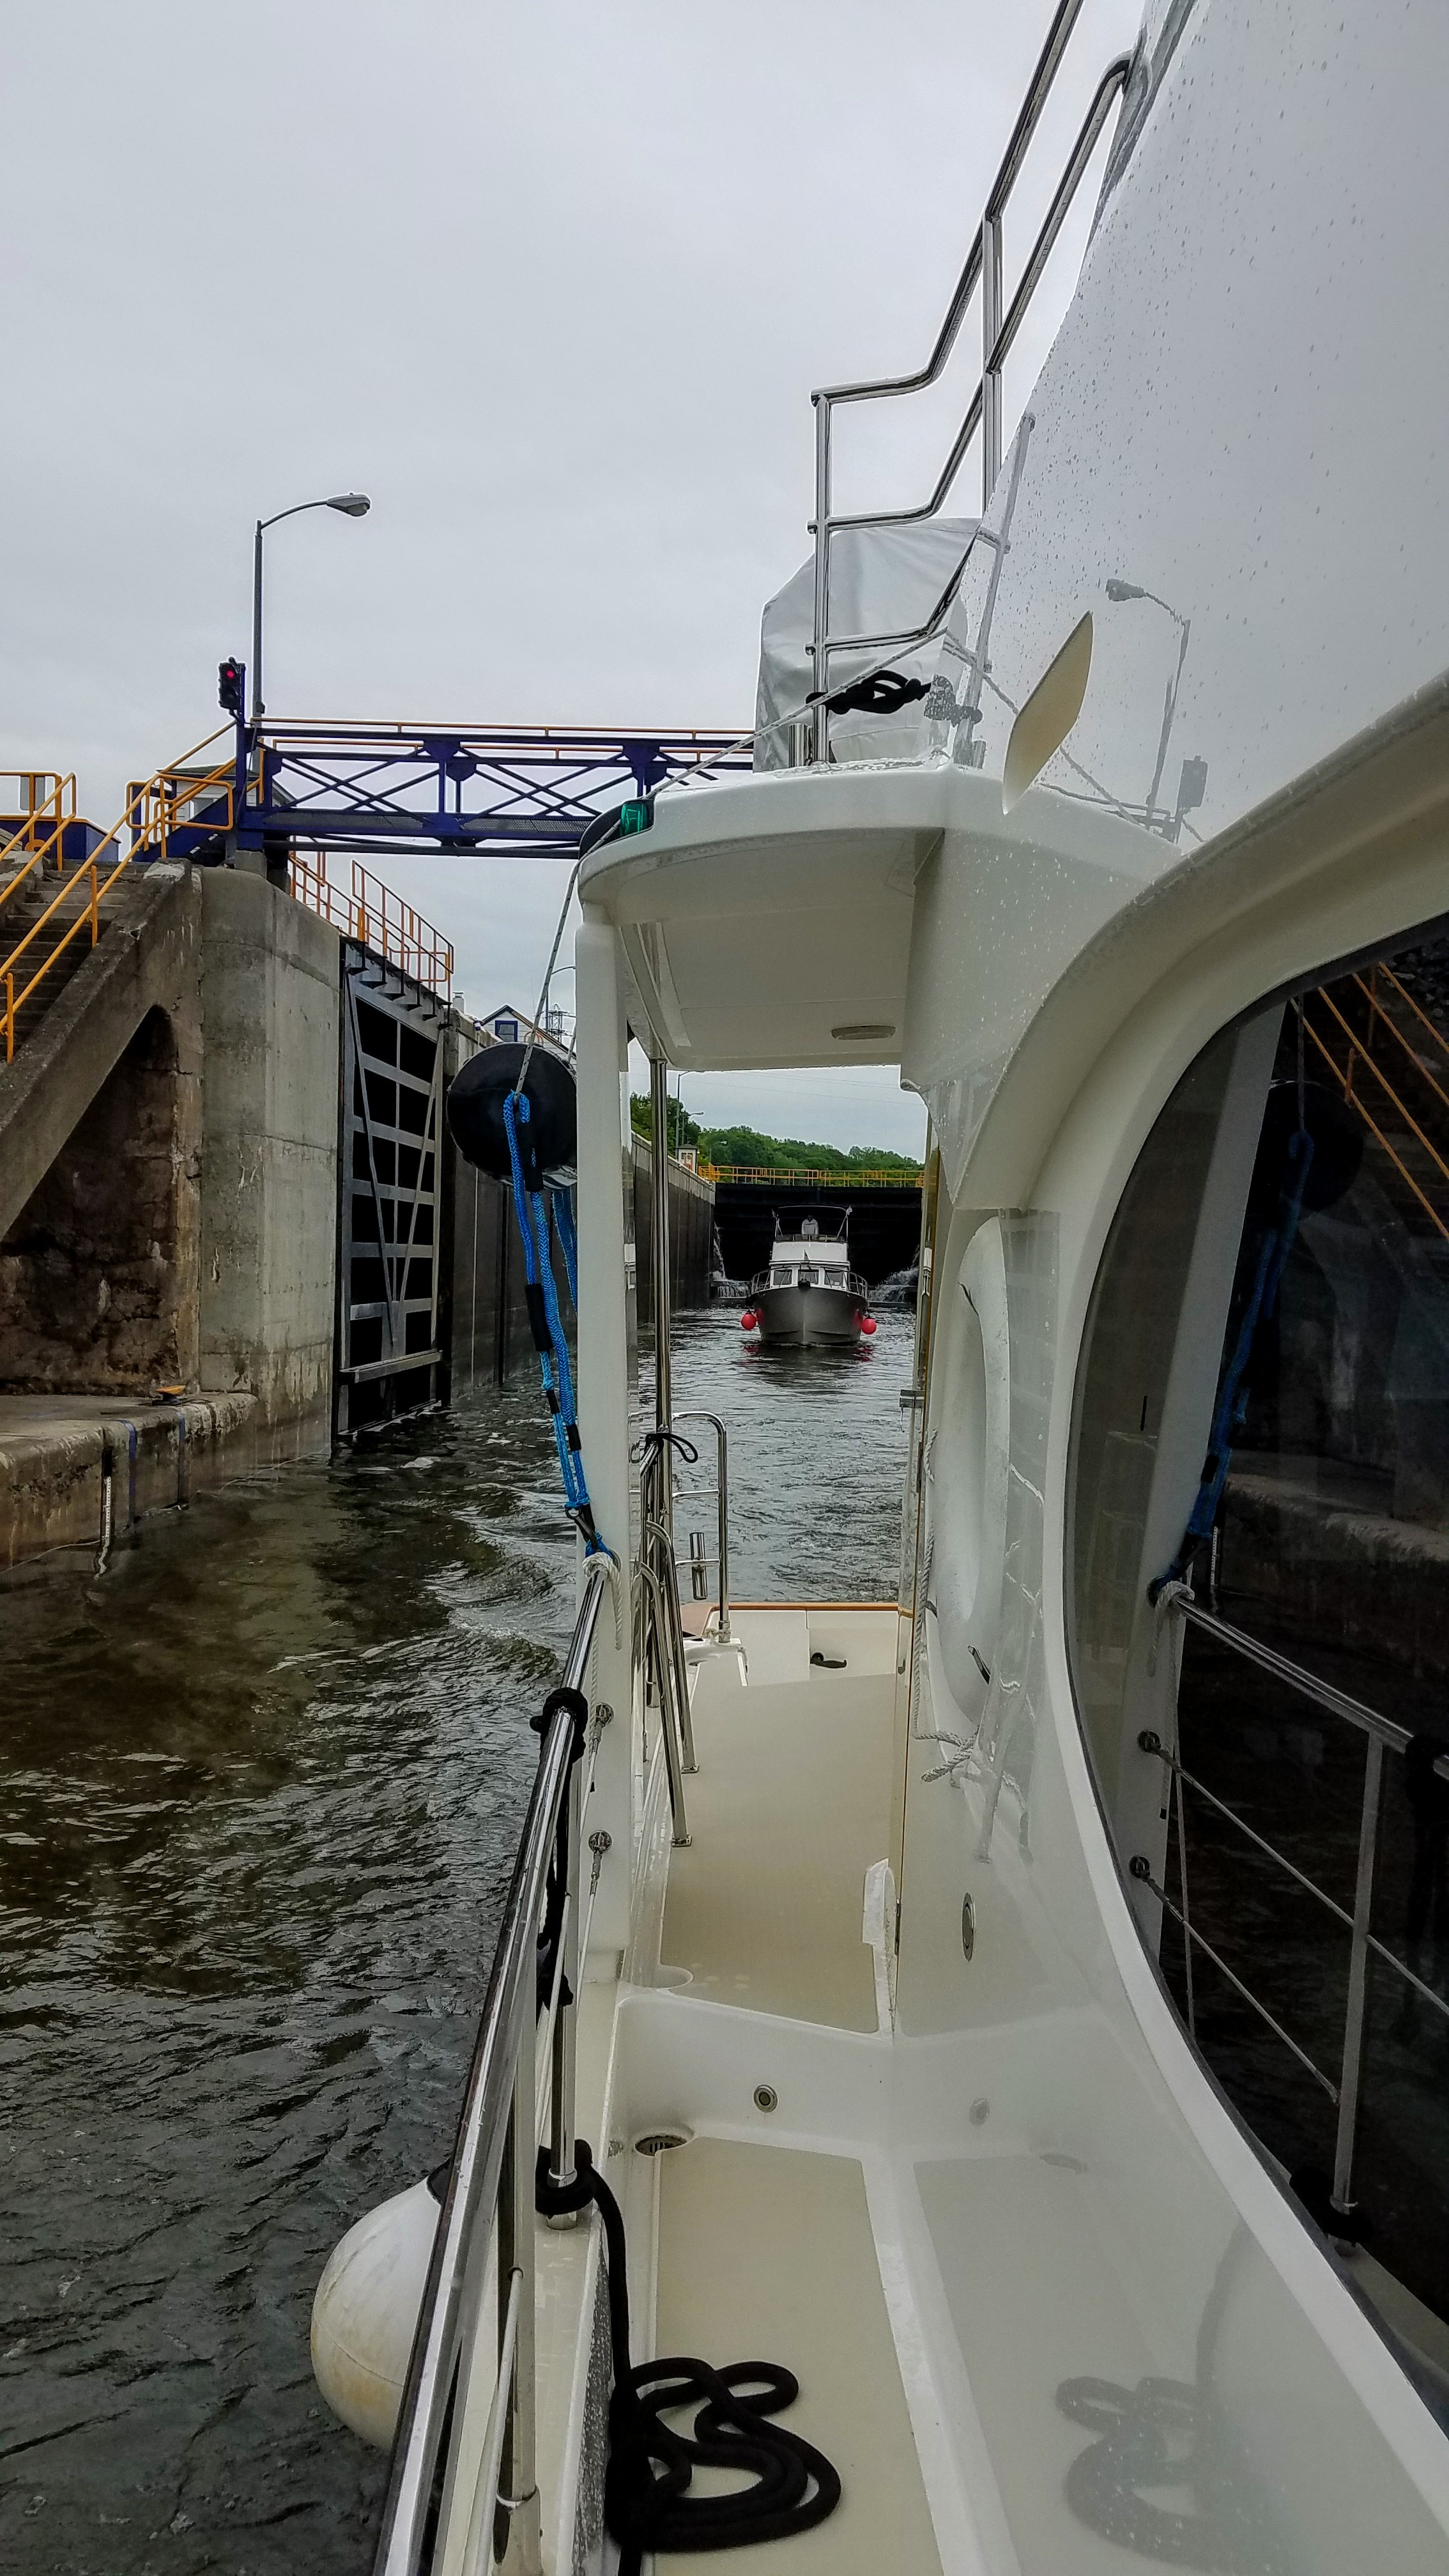 Exiting lock 6 of the Oswego Canal shadowed by the Comet